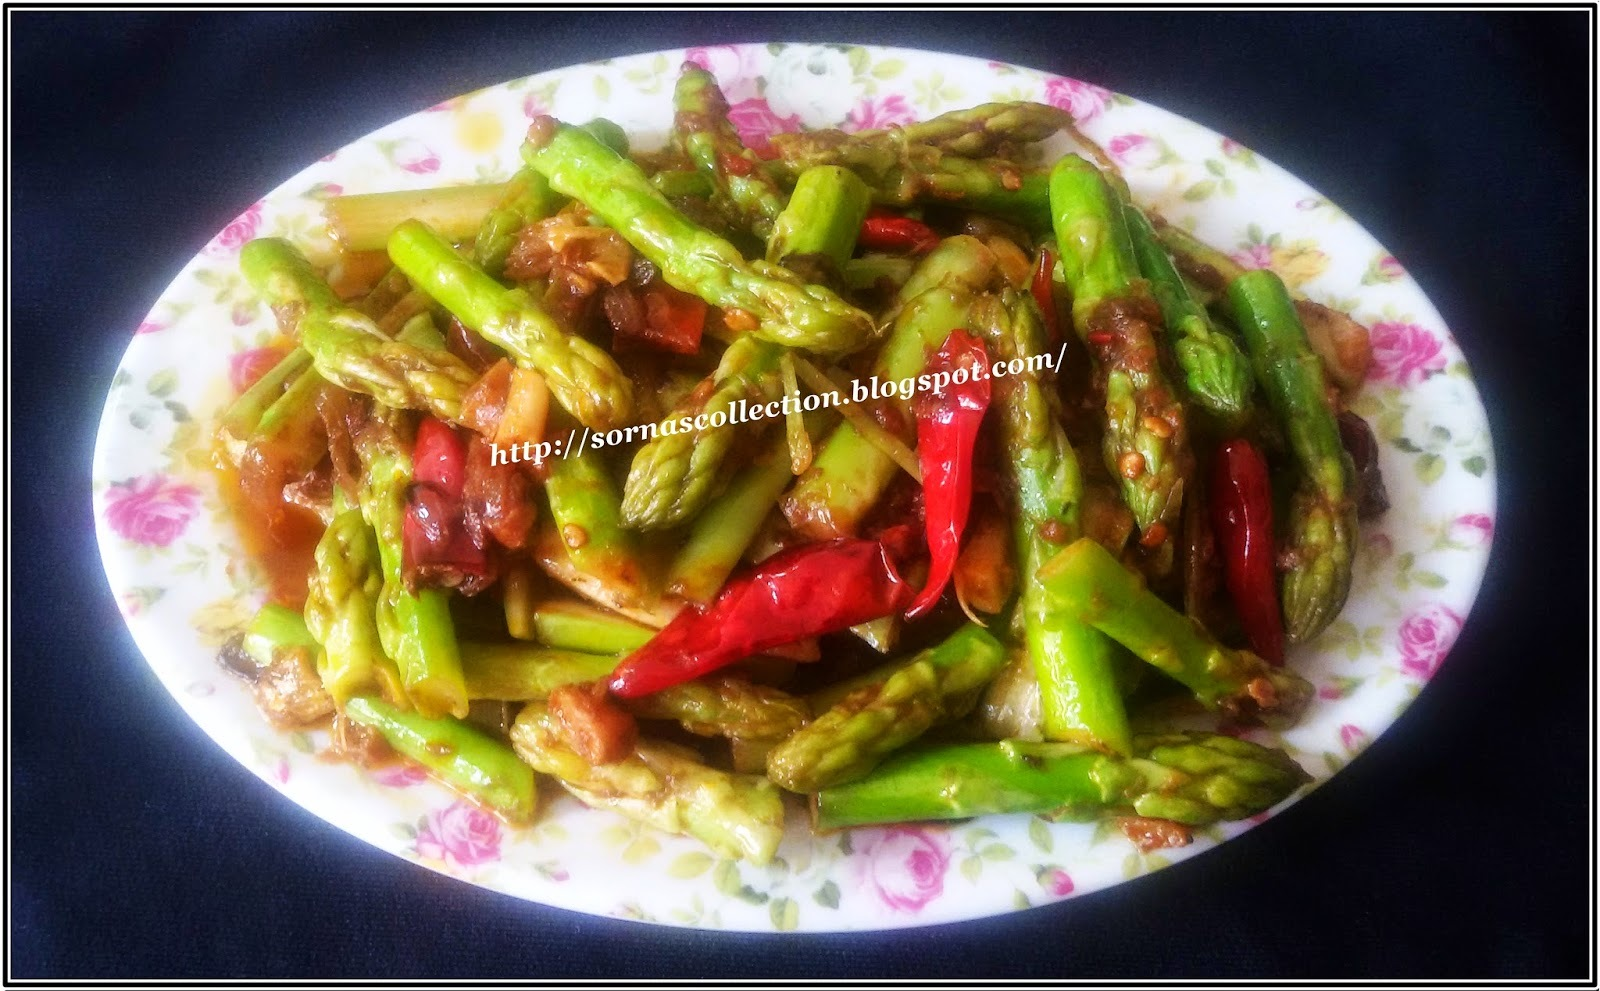 STIR-FRIED ASPARAGUS WITH SPICY SHRIMP PASTE